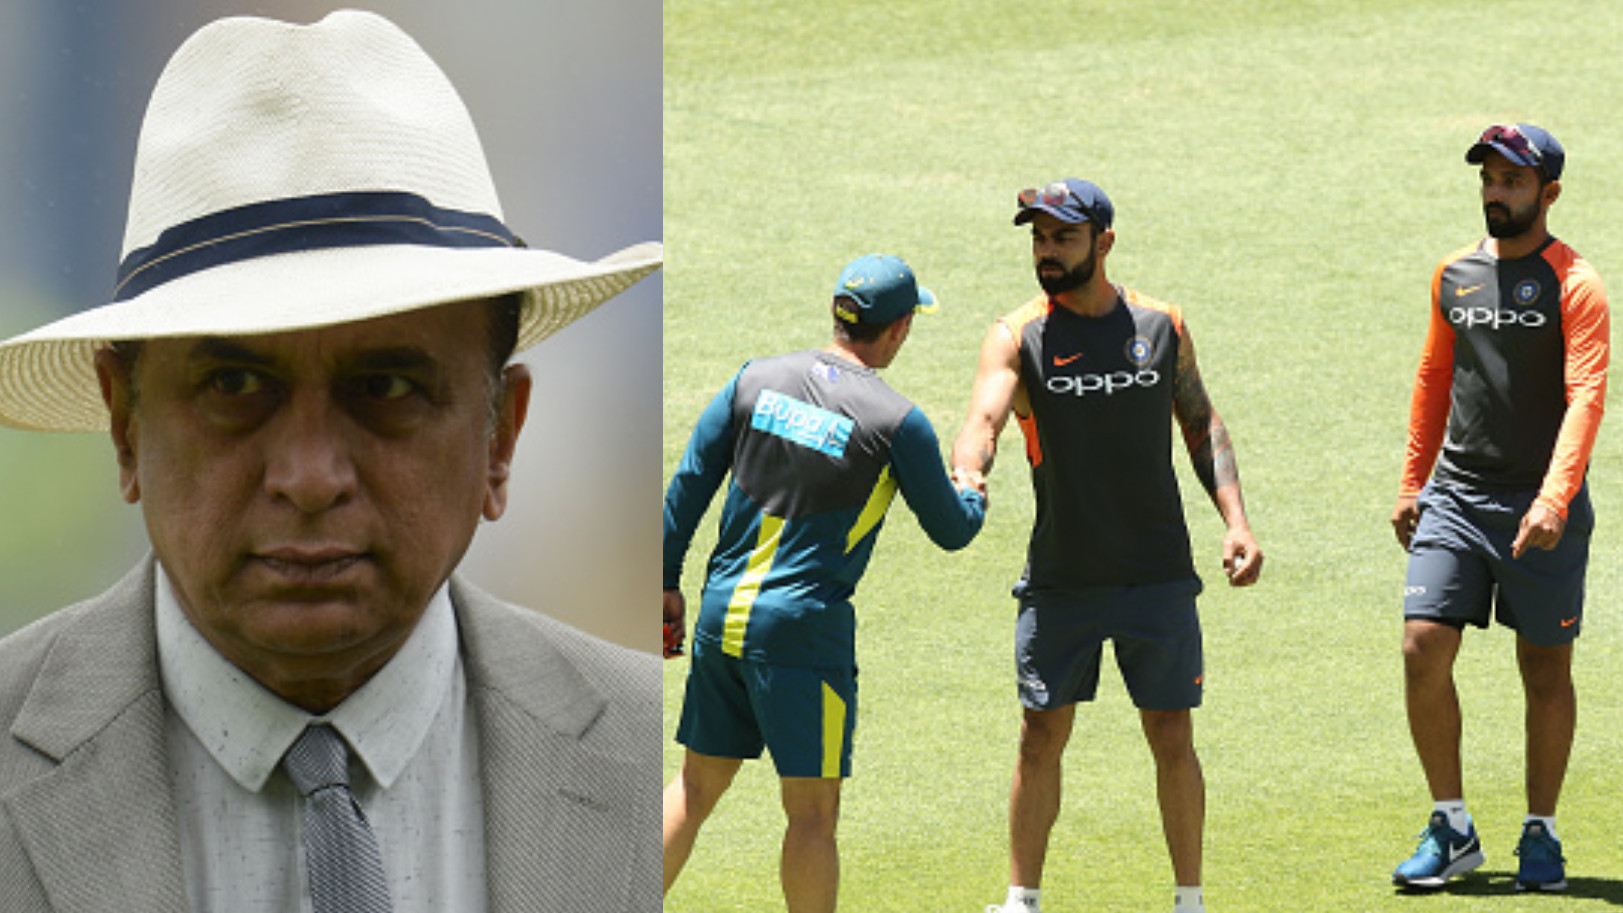 AUS v IND 2018-19: Sunil Gavaskar questions Team India's selection policies; exclusion of Bhuvneshwar